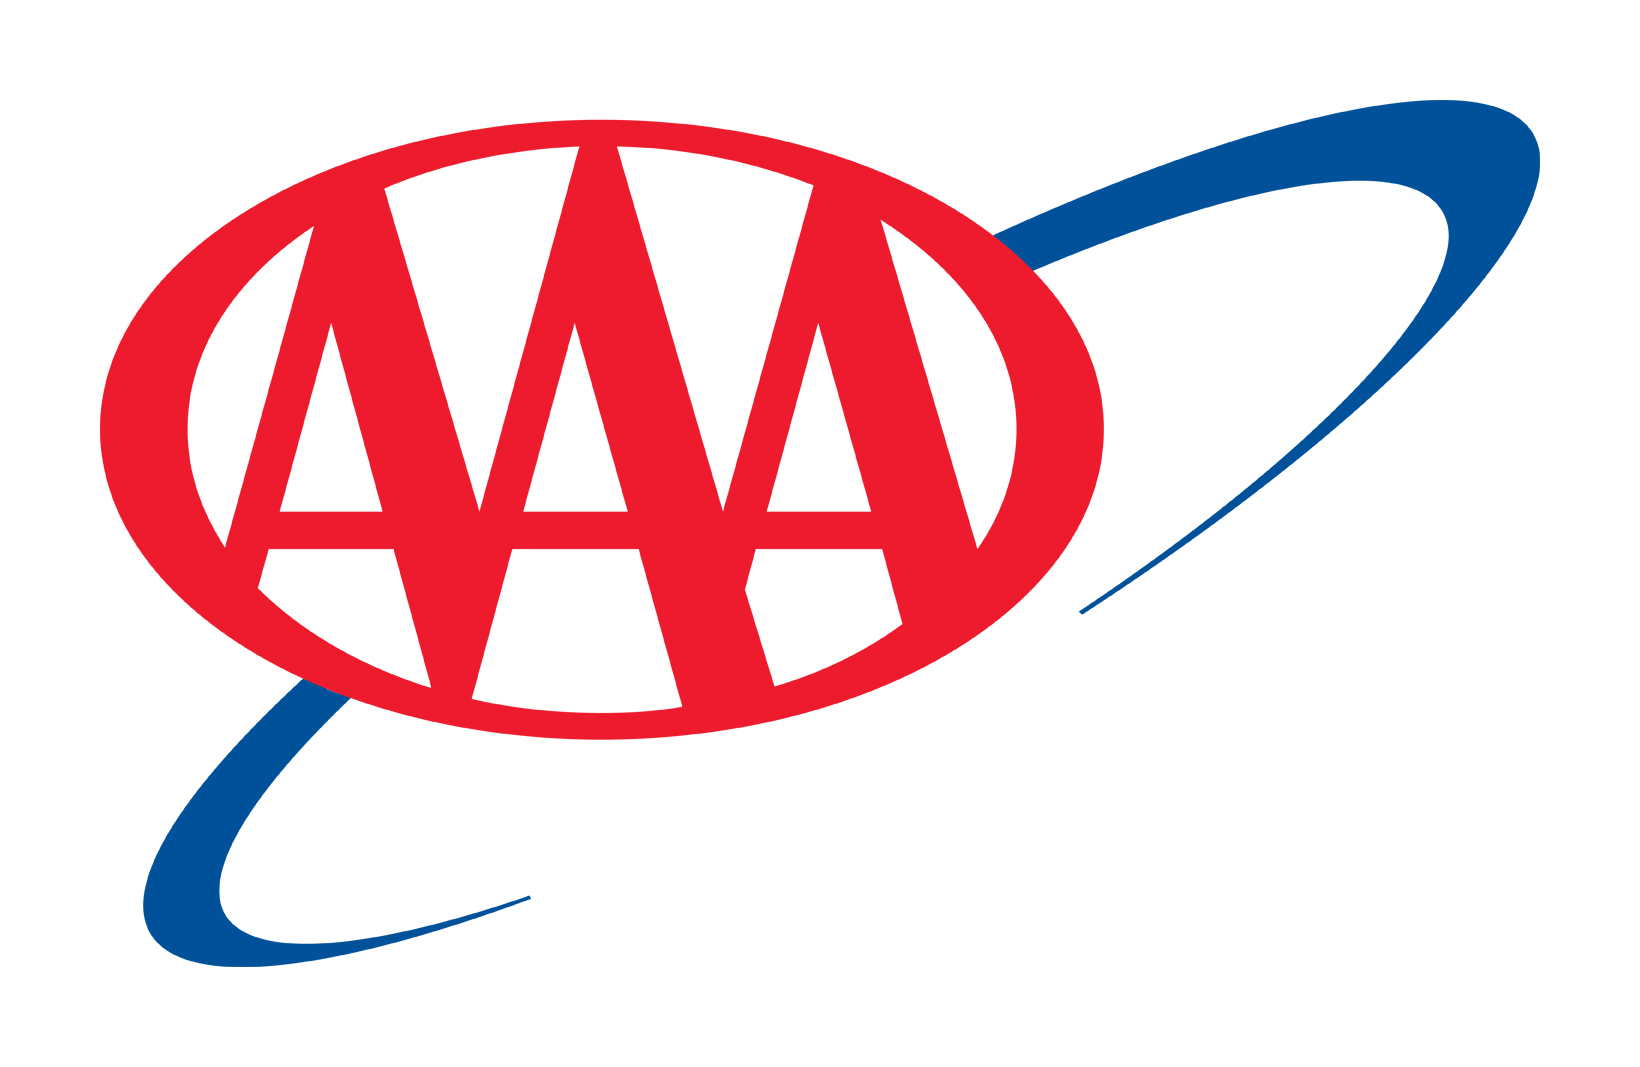 AAA Towing Services in Daytona Beach, Fl